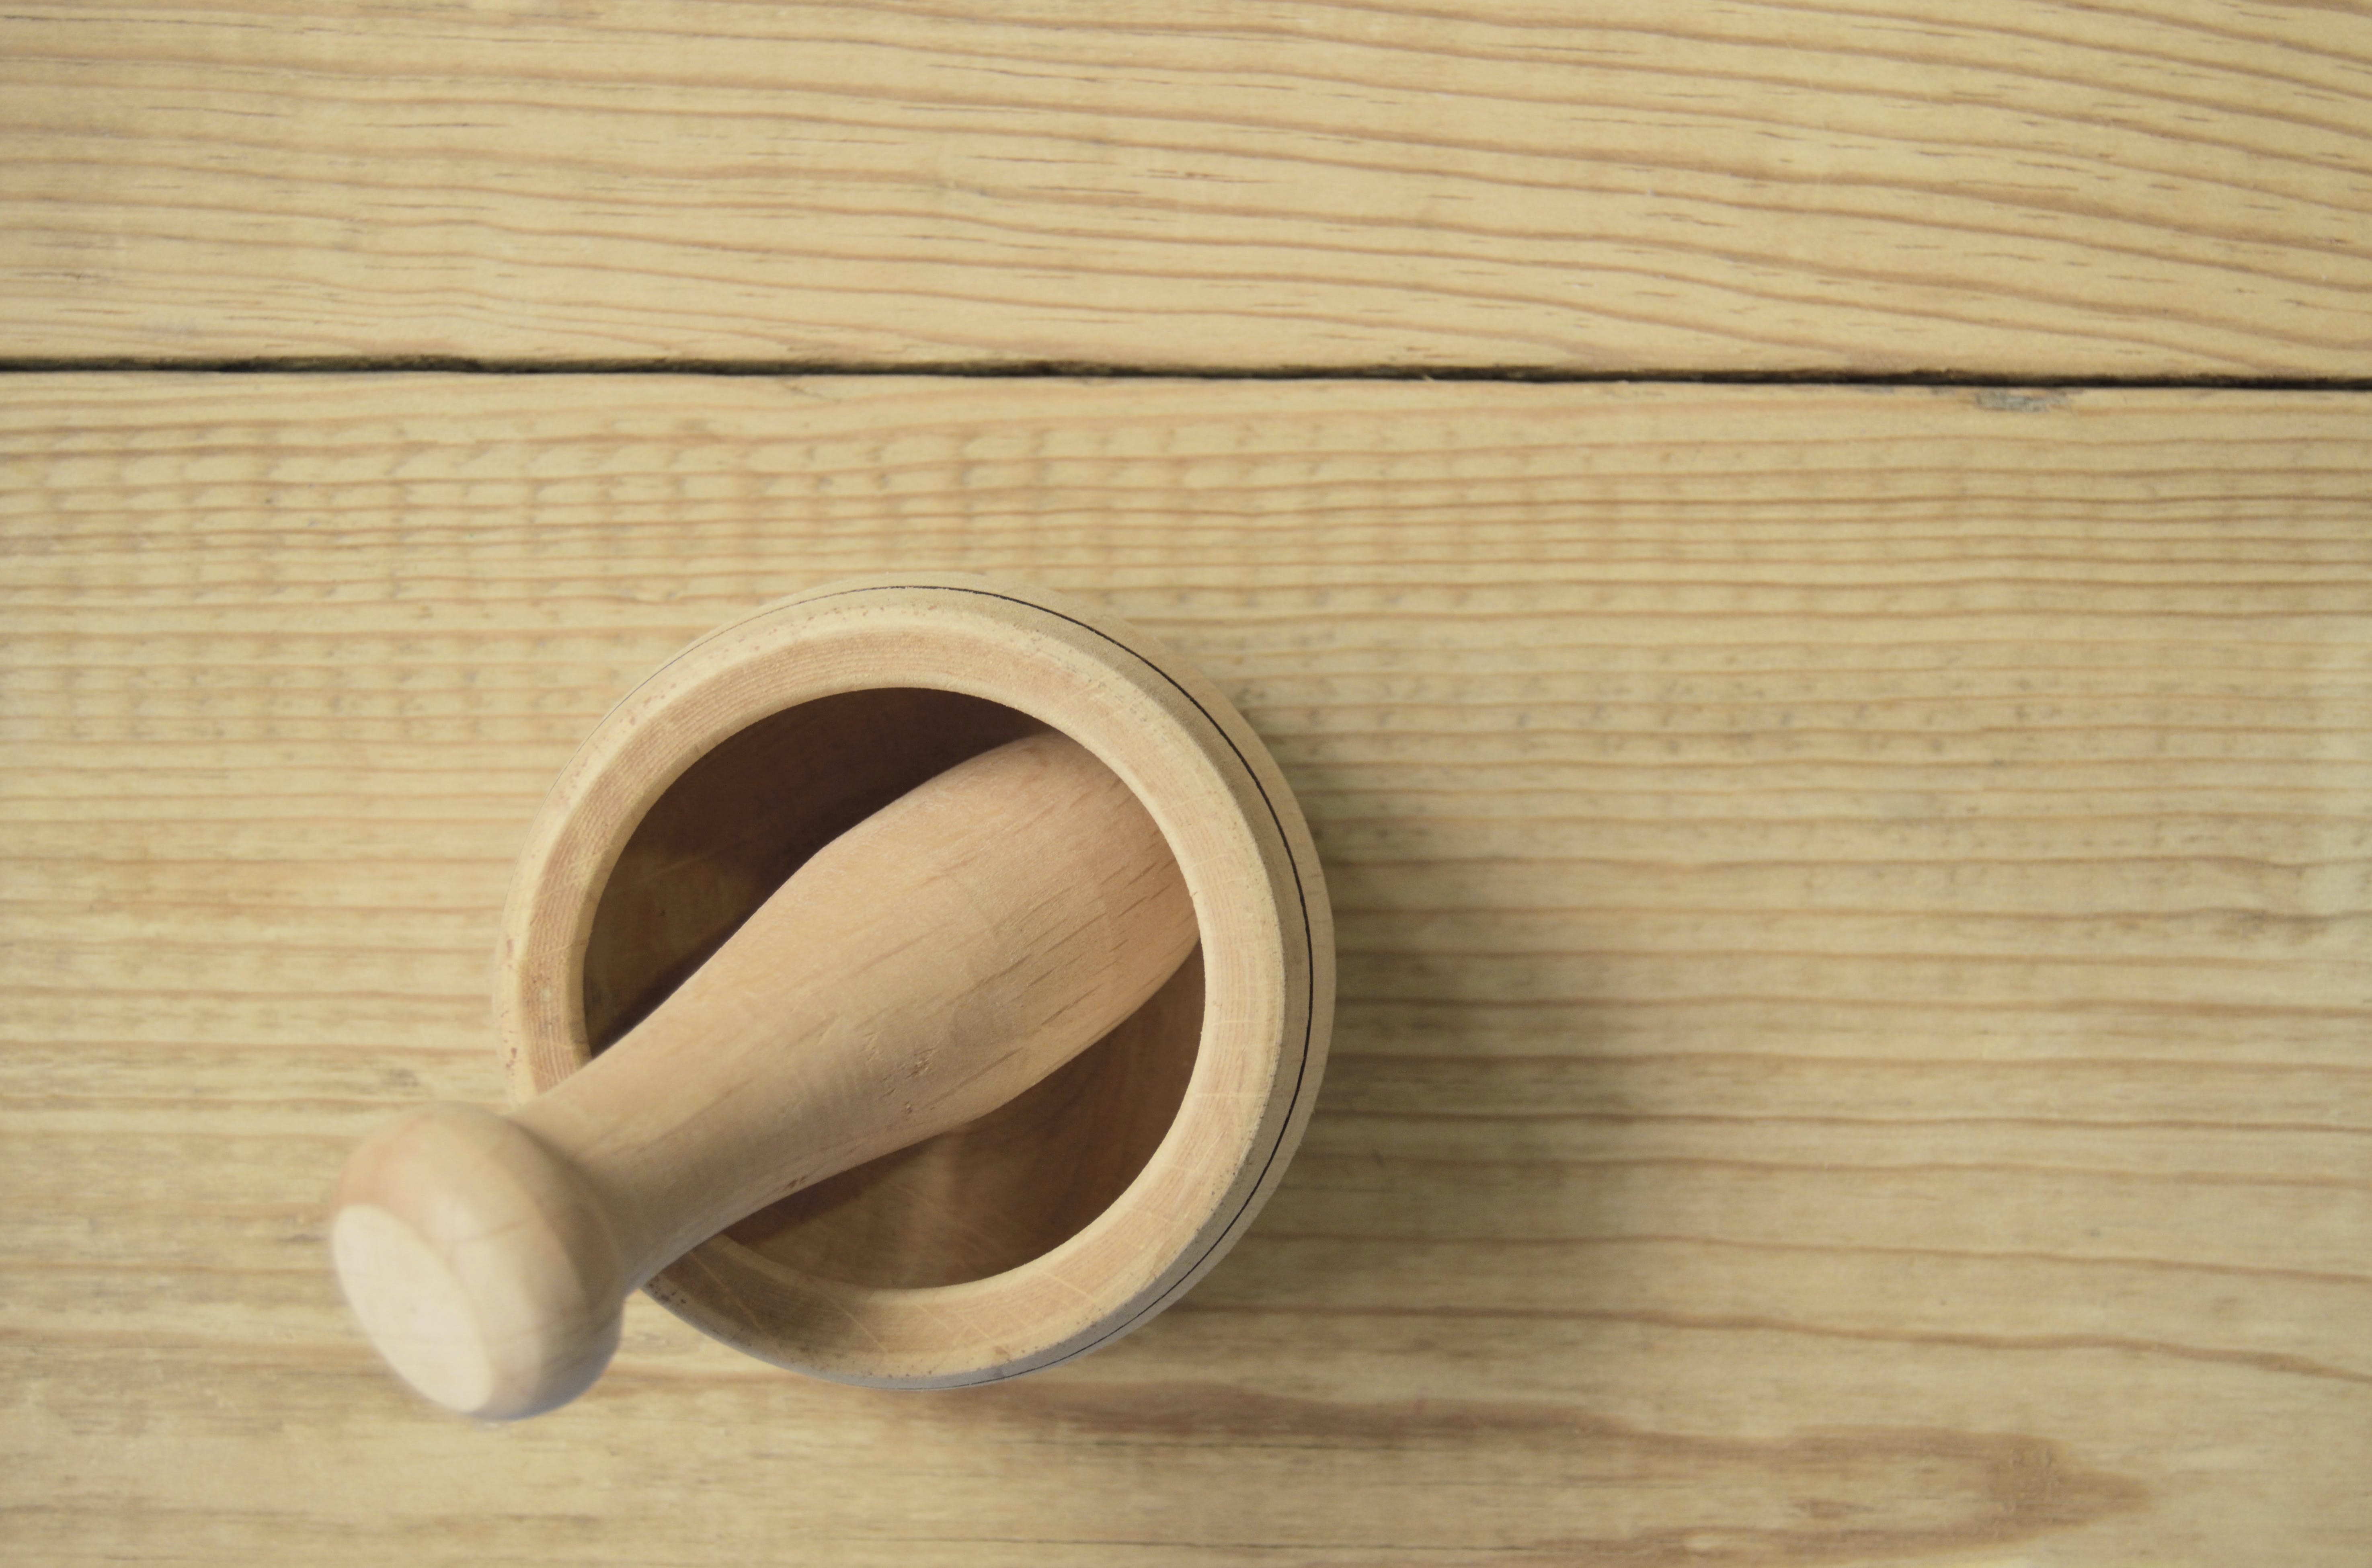 Brown Wooden Pestle and Mortar